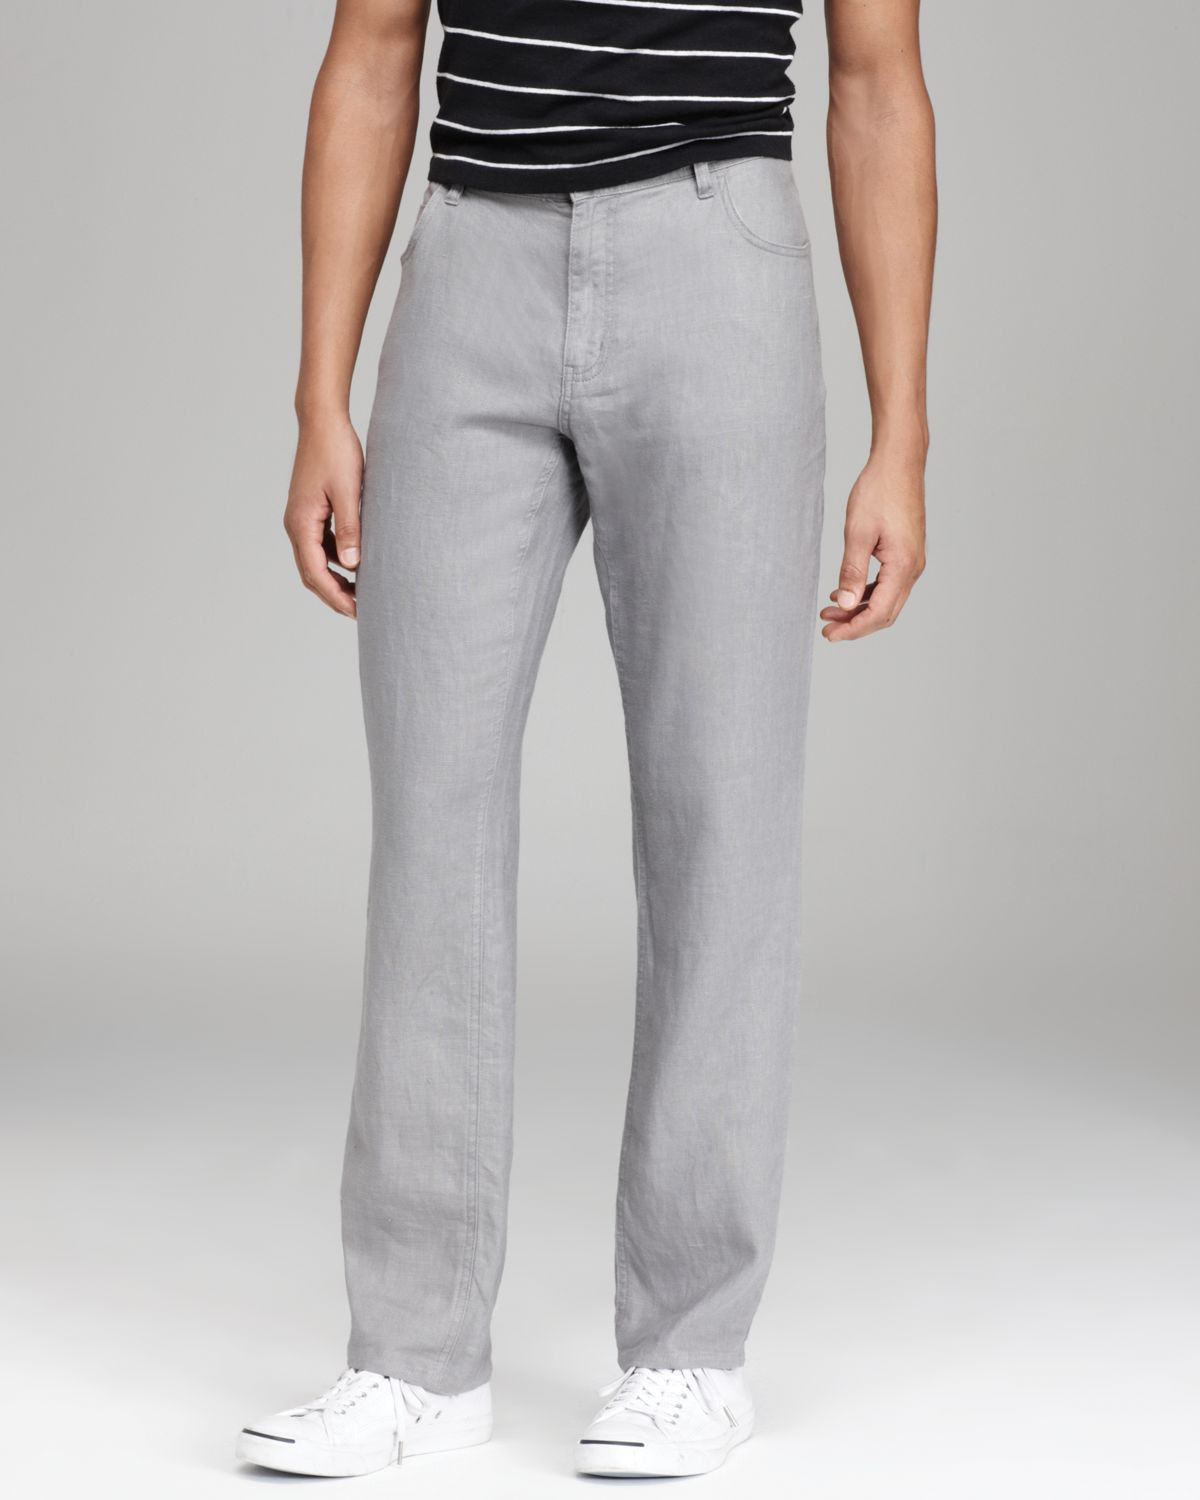 Michael kors Linen Pants in Gray for Men | Lyst